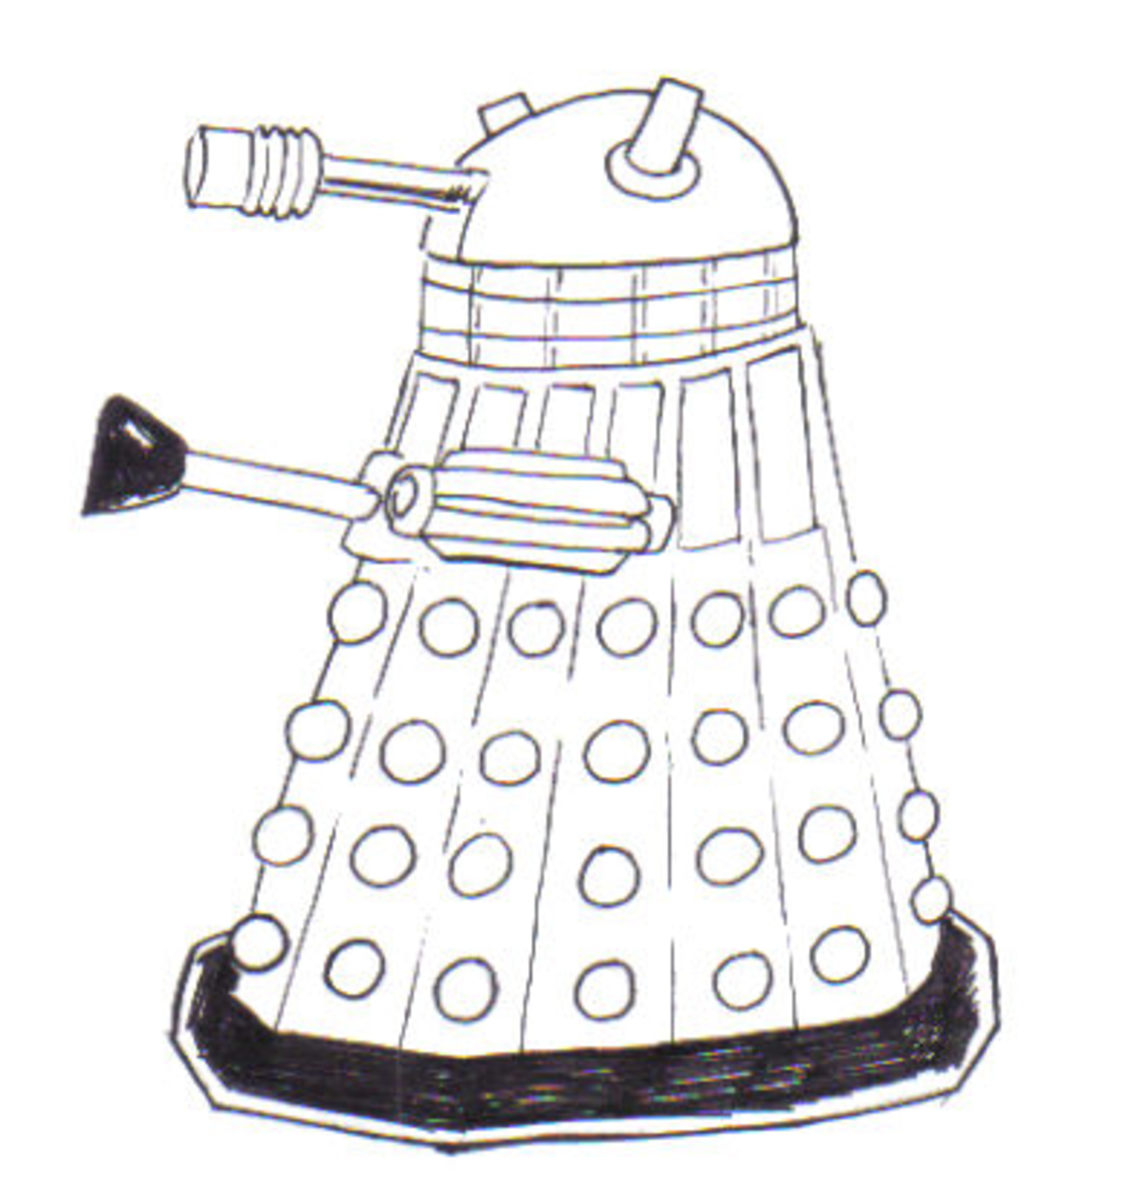 Complete Dalek drawing inked and all.